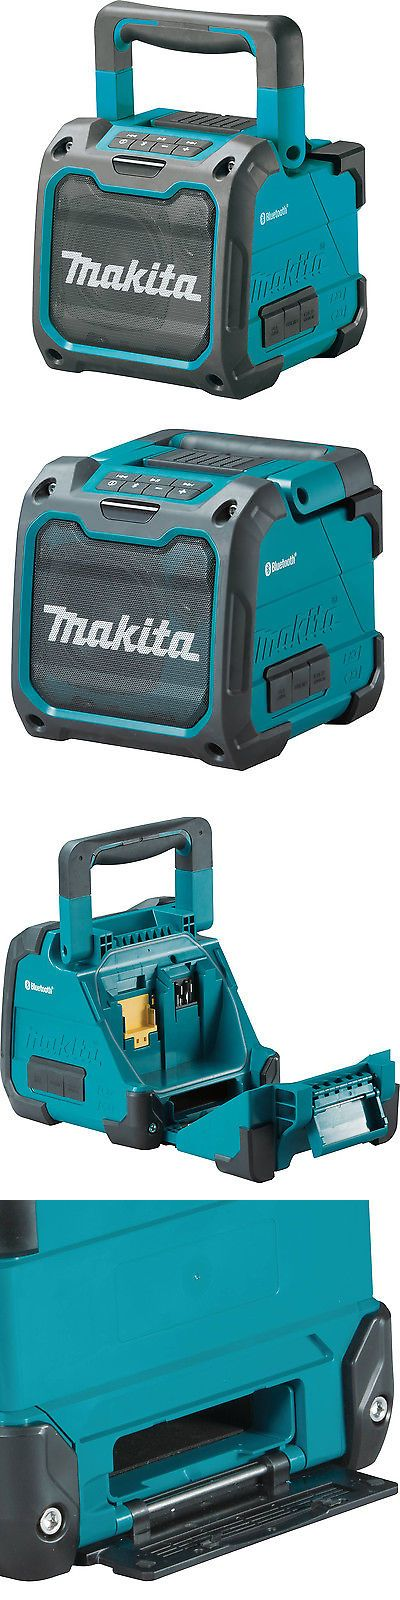 Portable AM FM Radios: Makita Cordless Bluetooth Job Site Speaker (Battery Not Included)   Xrm07 BUY IT NOW ONLY: $94.99